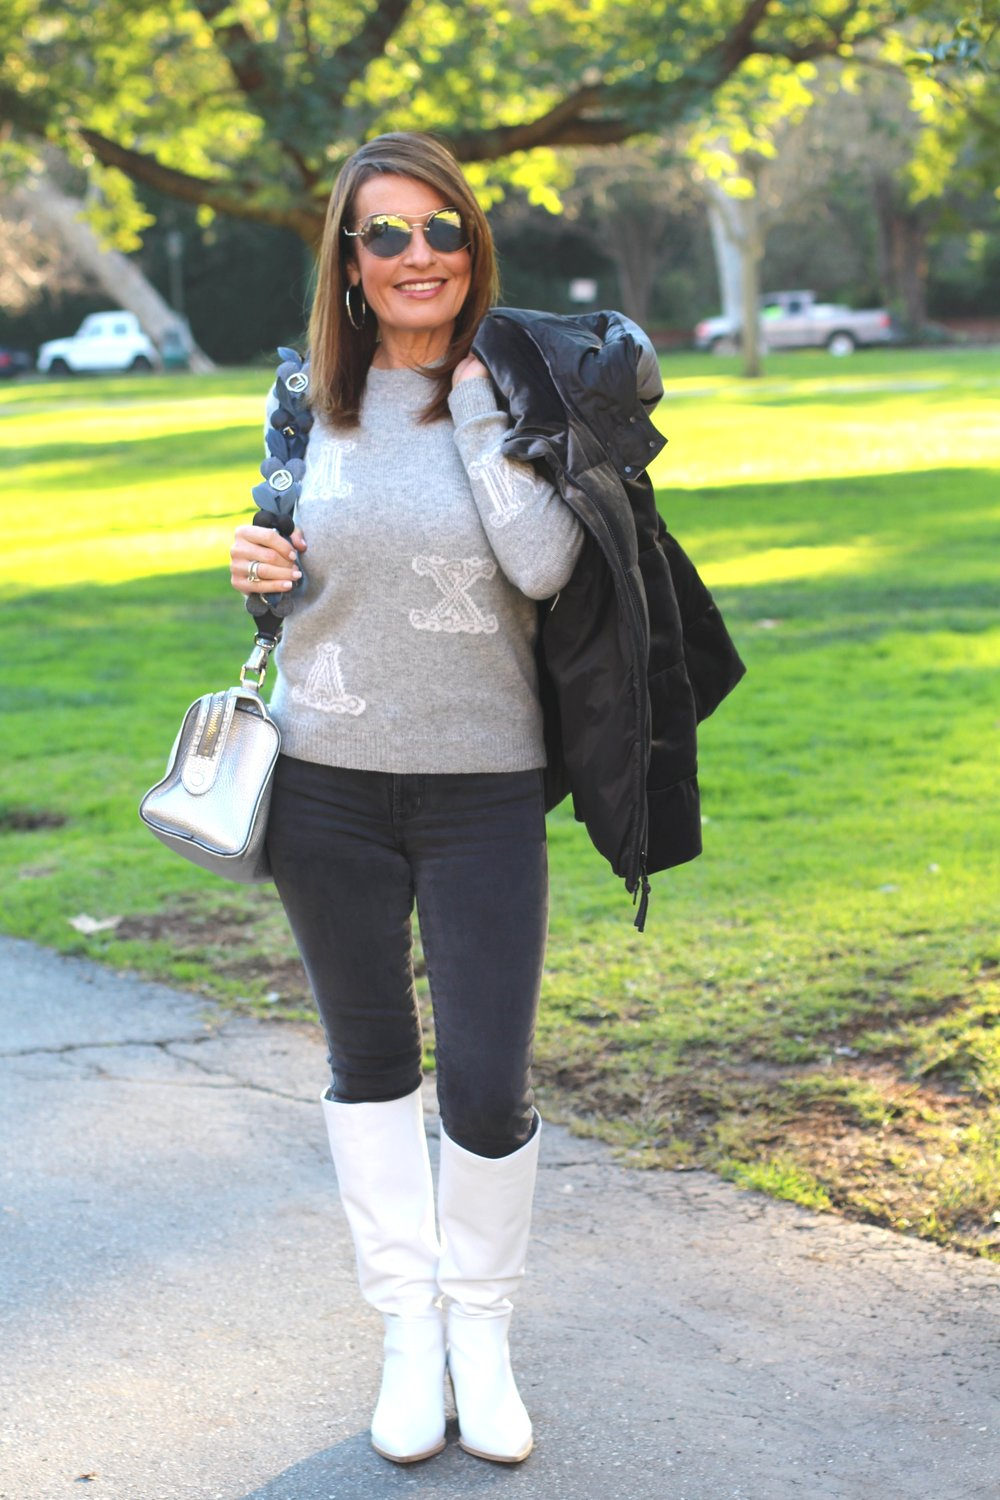 Max Mara sweater   , J Brand jeans, Gianvito Rossi boots,    similar for less here     ,   Brunello Cucinelli Jacket,     similar and on sale here     ,   Fendi handbag and strap, Miu Miu Sunnies,    John Hardy earrings   , Spinelli Kilcollin ring.